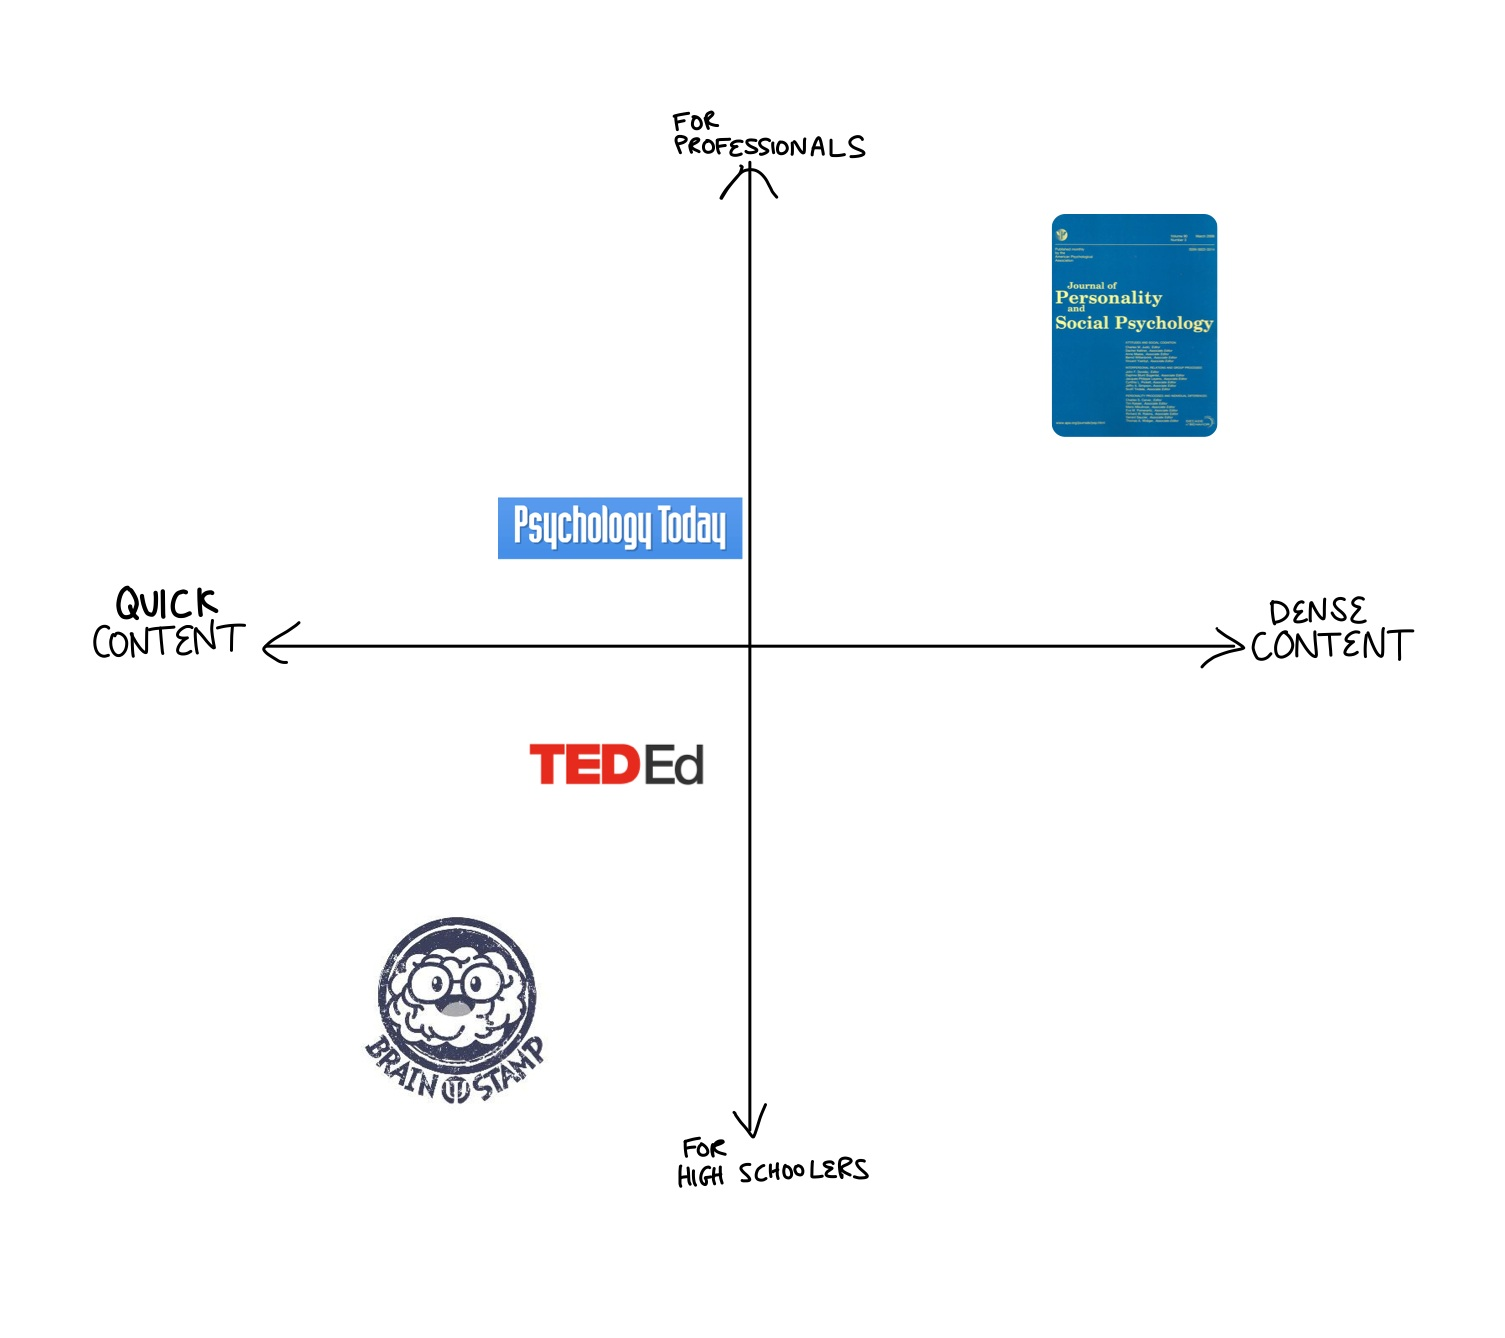 Product Positioning Matrix - While other similar options offer educational content that is (mostly) jargon-free, Brain Stamp is the only publication that offers collaboration among students.